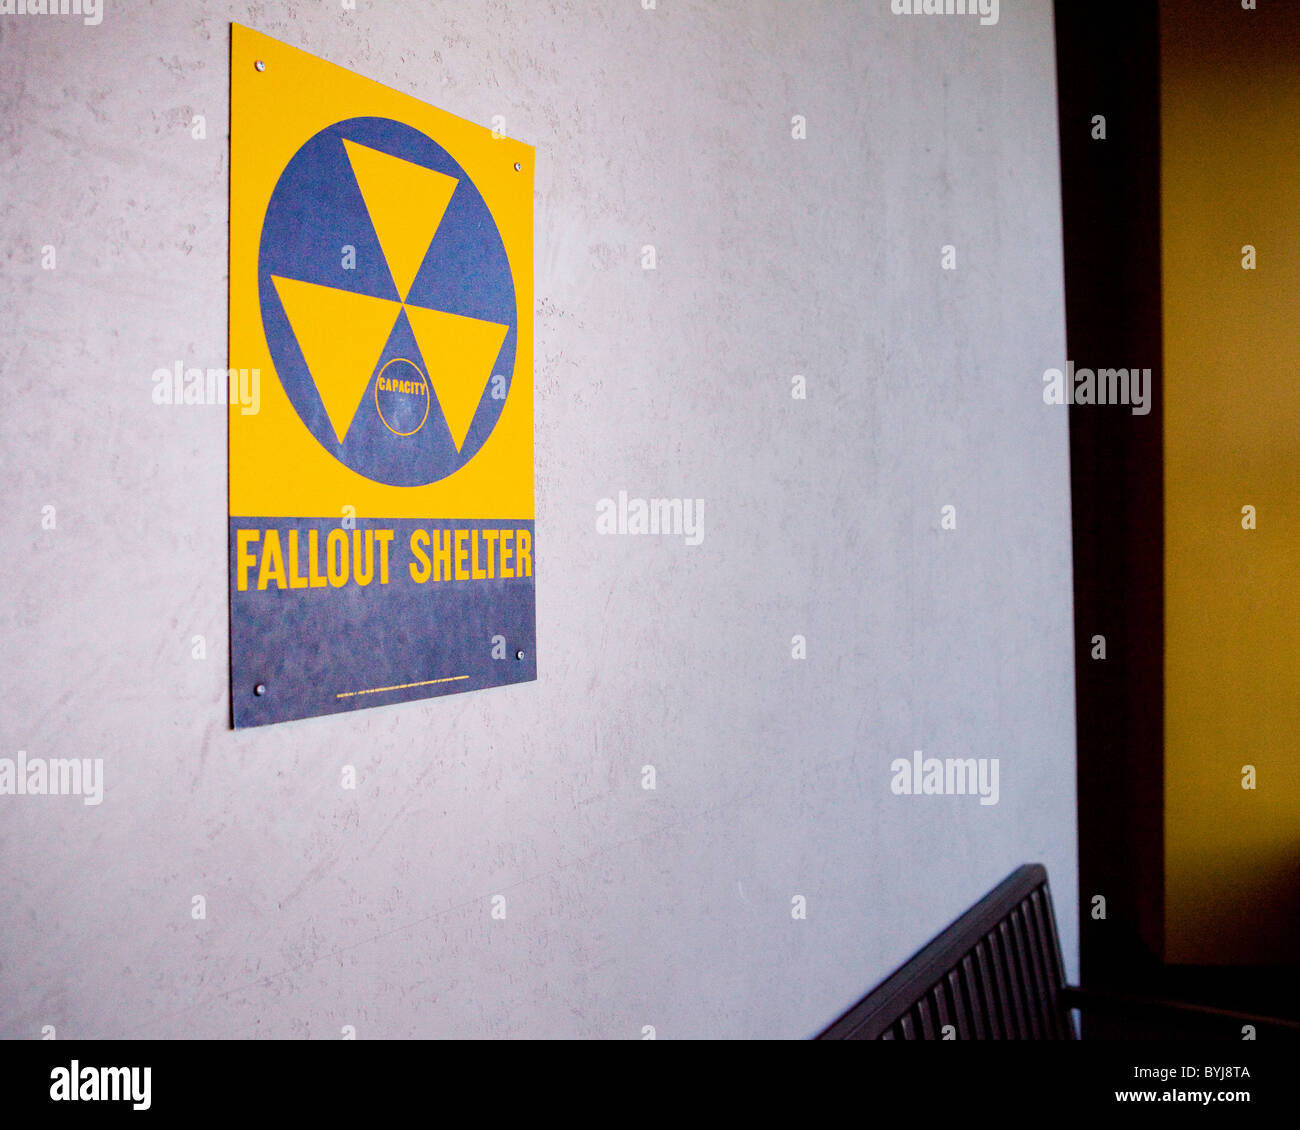 Fallout shelter sign on wall - USA Stock Photo